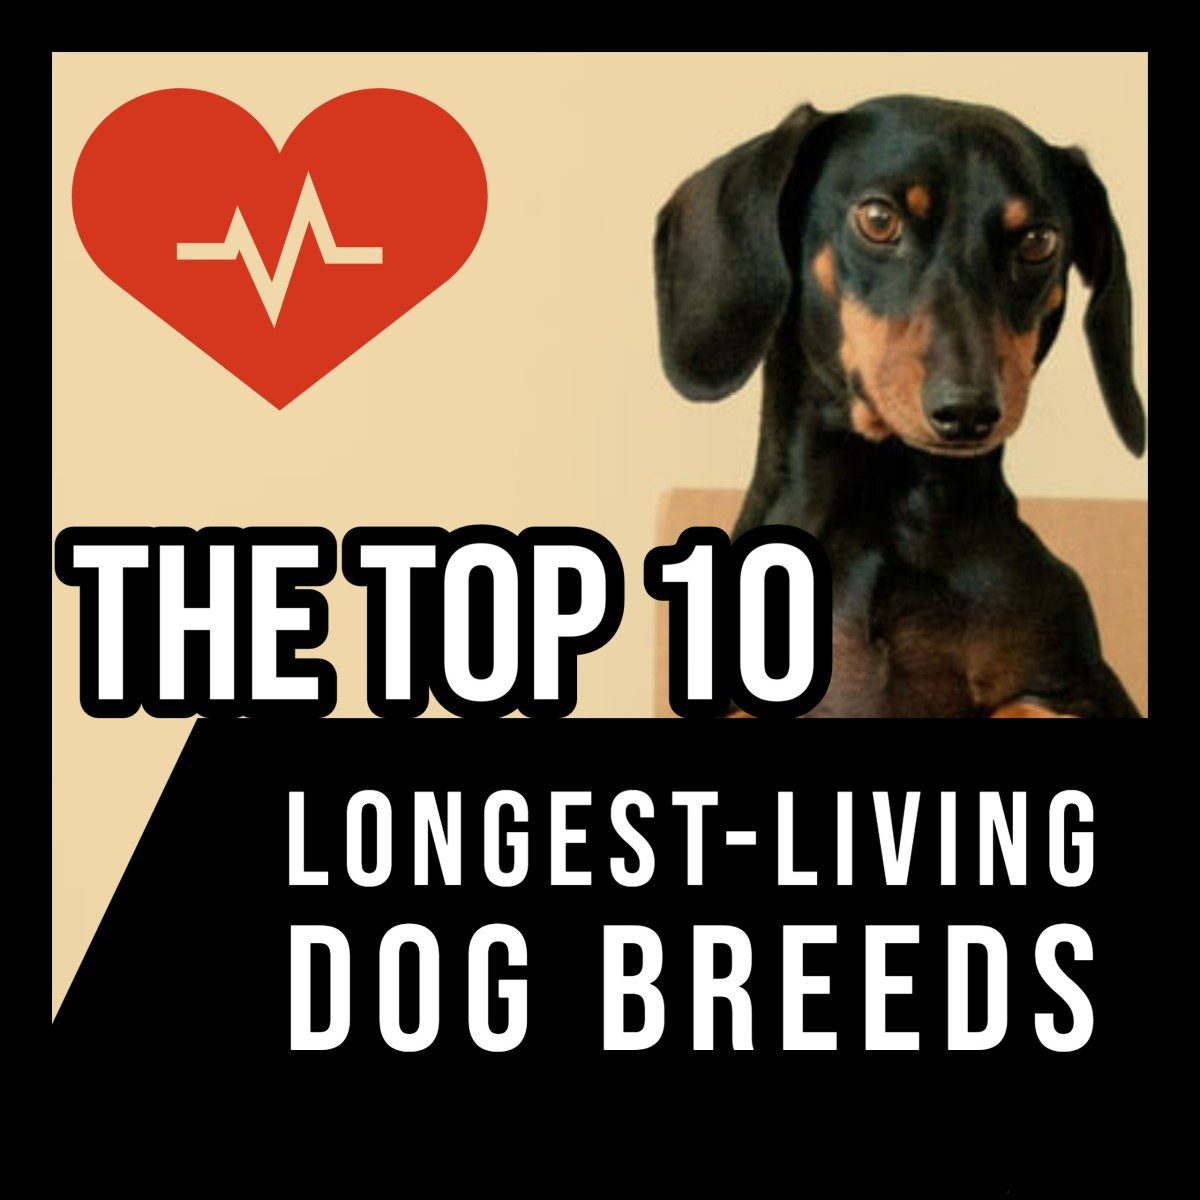 From the Australian Cattle Dog to the Chihuahua, this article ranks the world's 10 longest-living dog breeds.